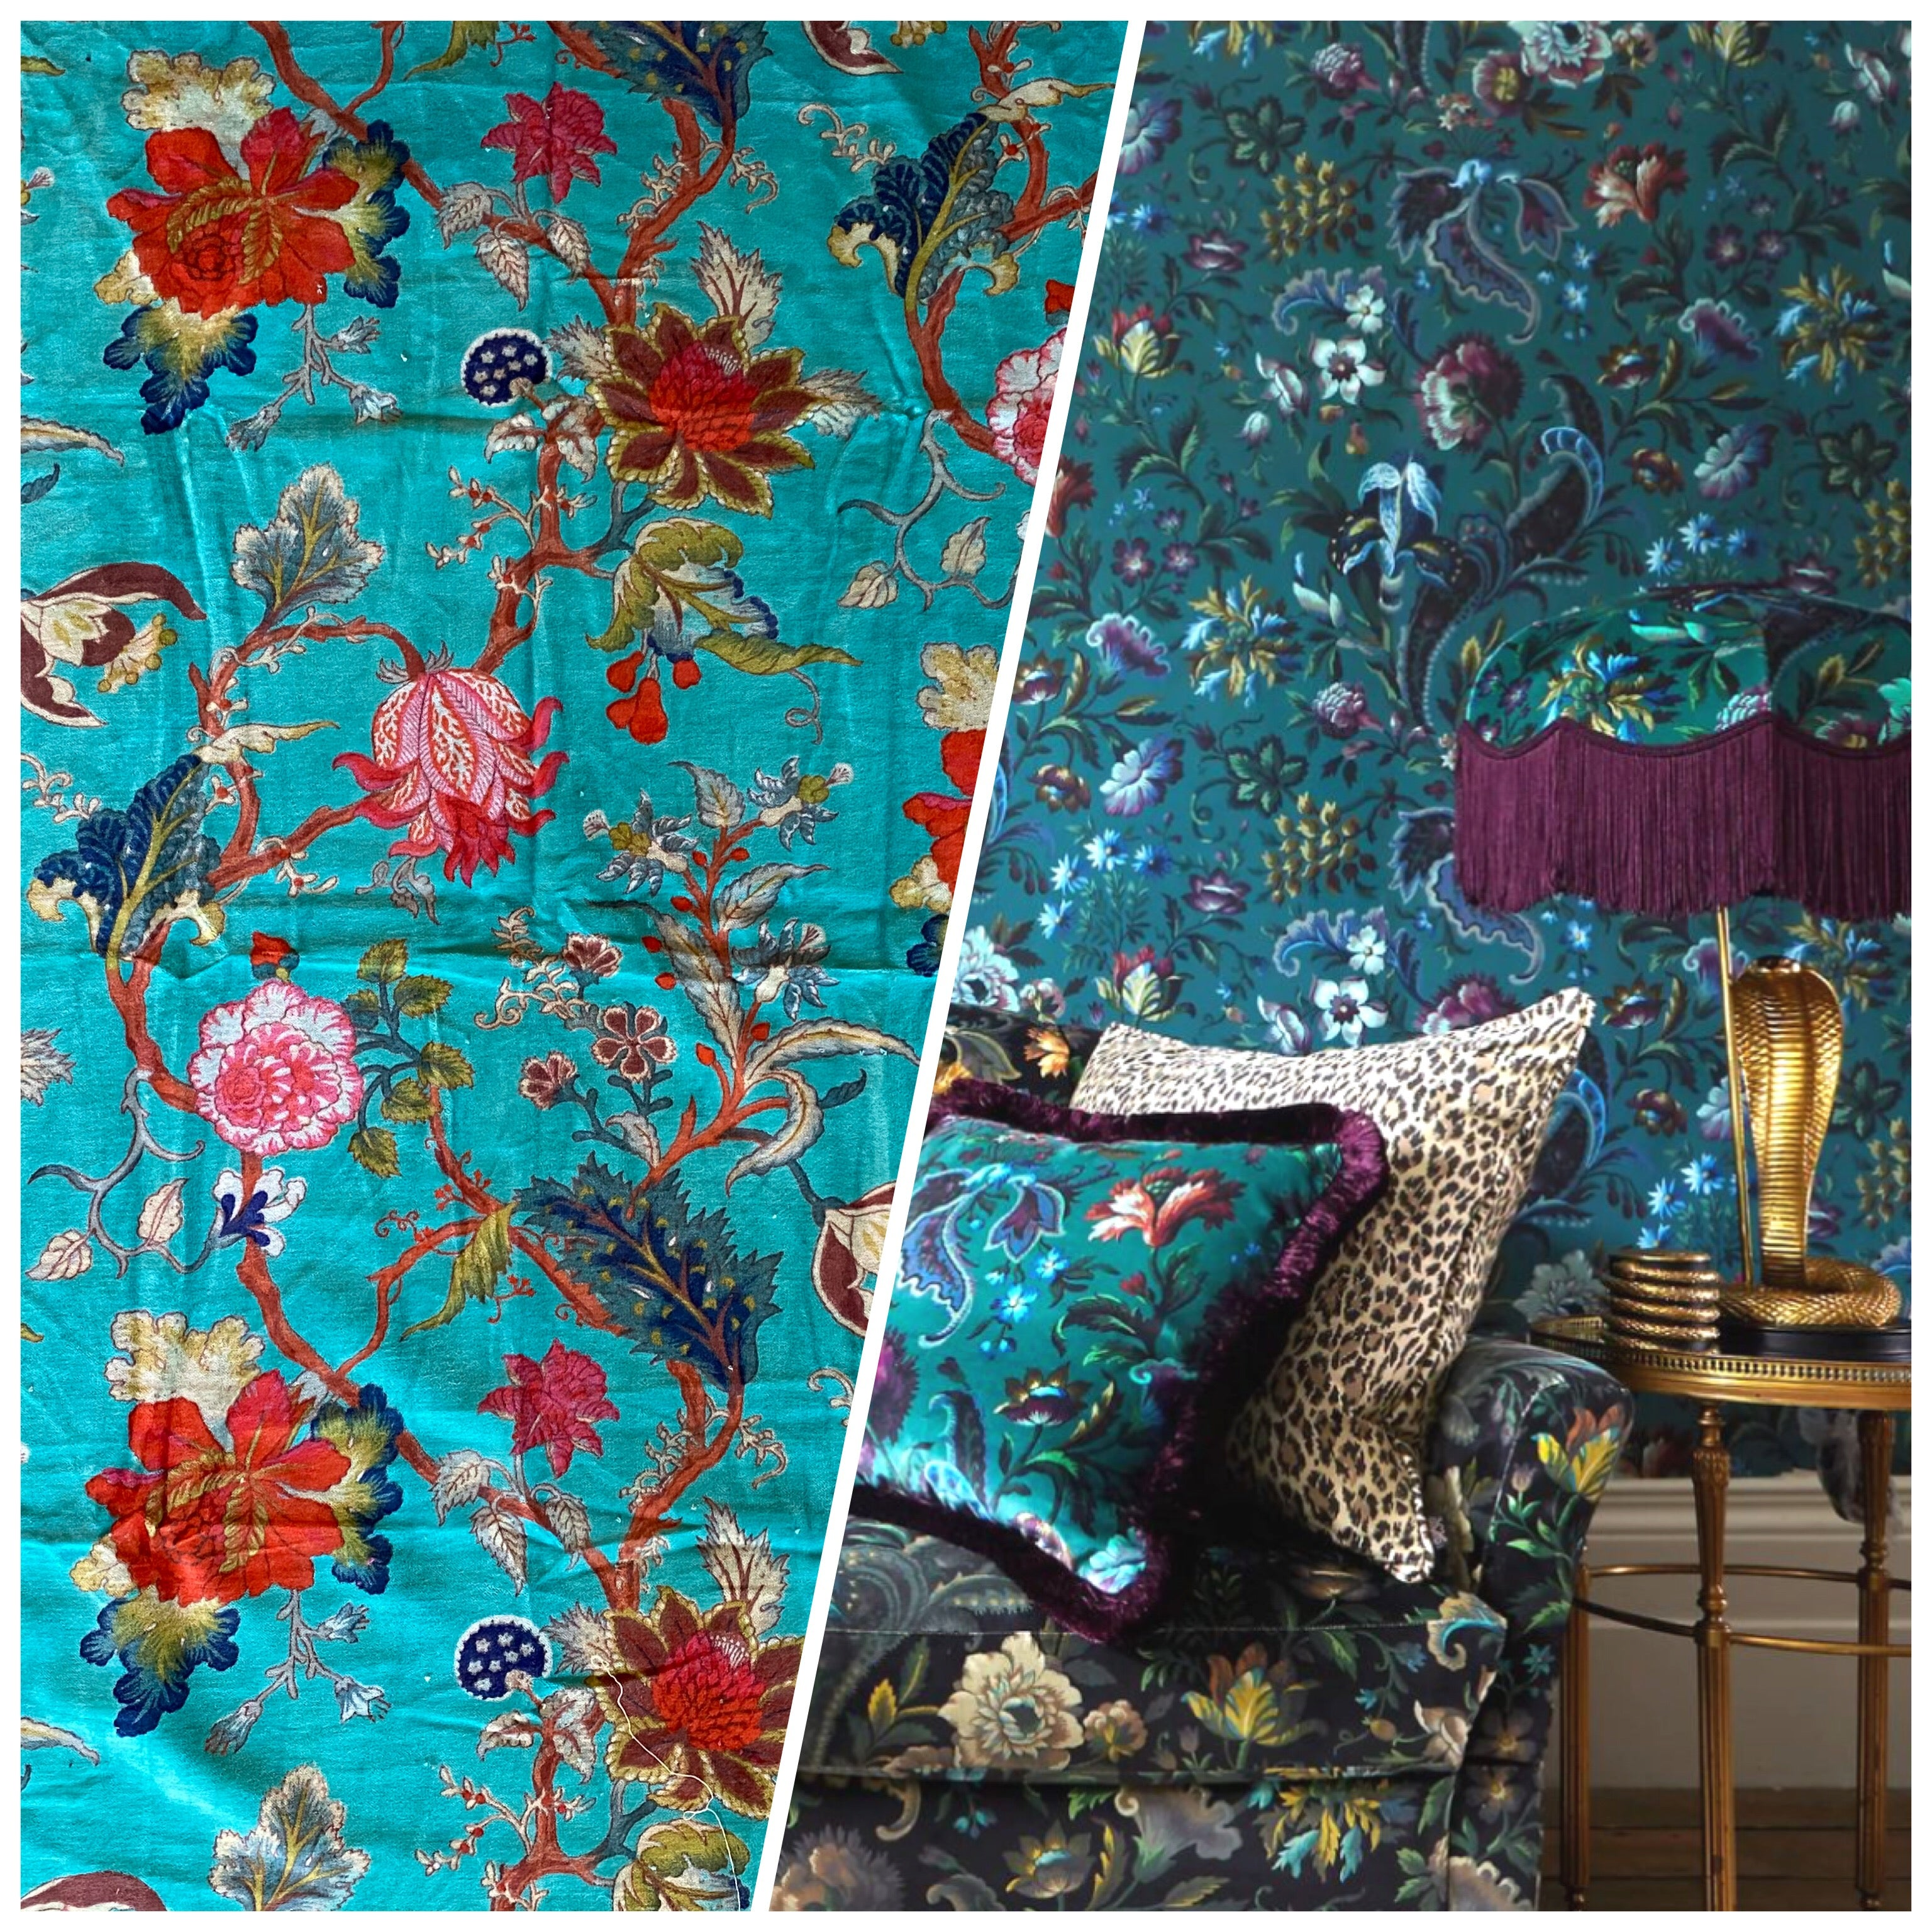 NEW Queen Adelina 100% Cotton Velvet Fabric Paradise Floral and Bird Motif in Turquoise